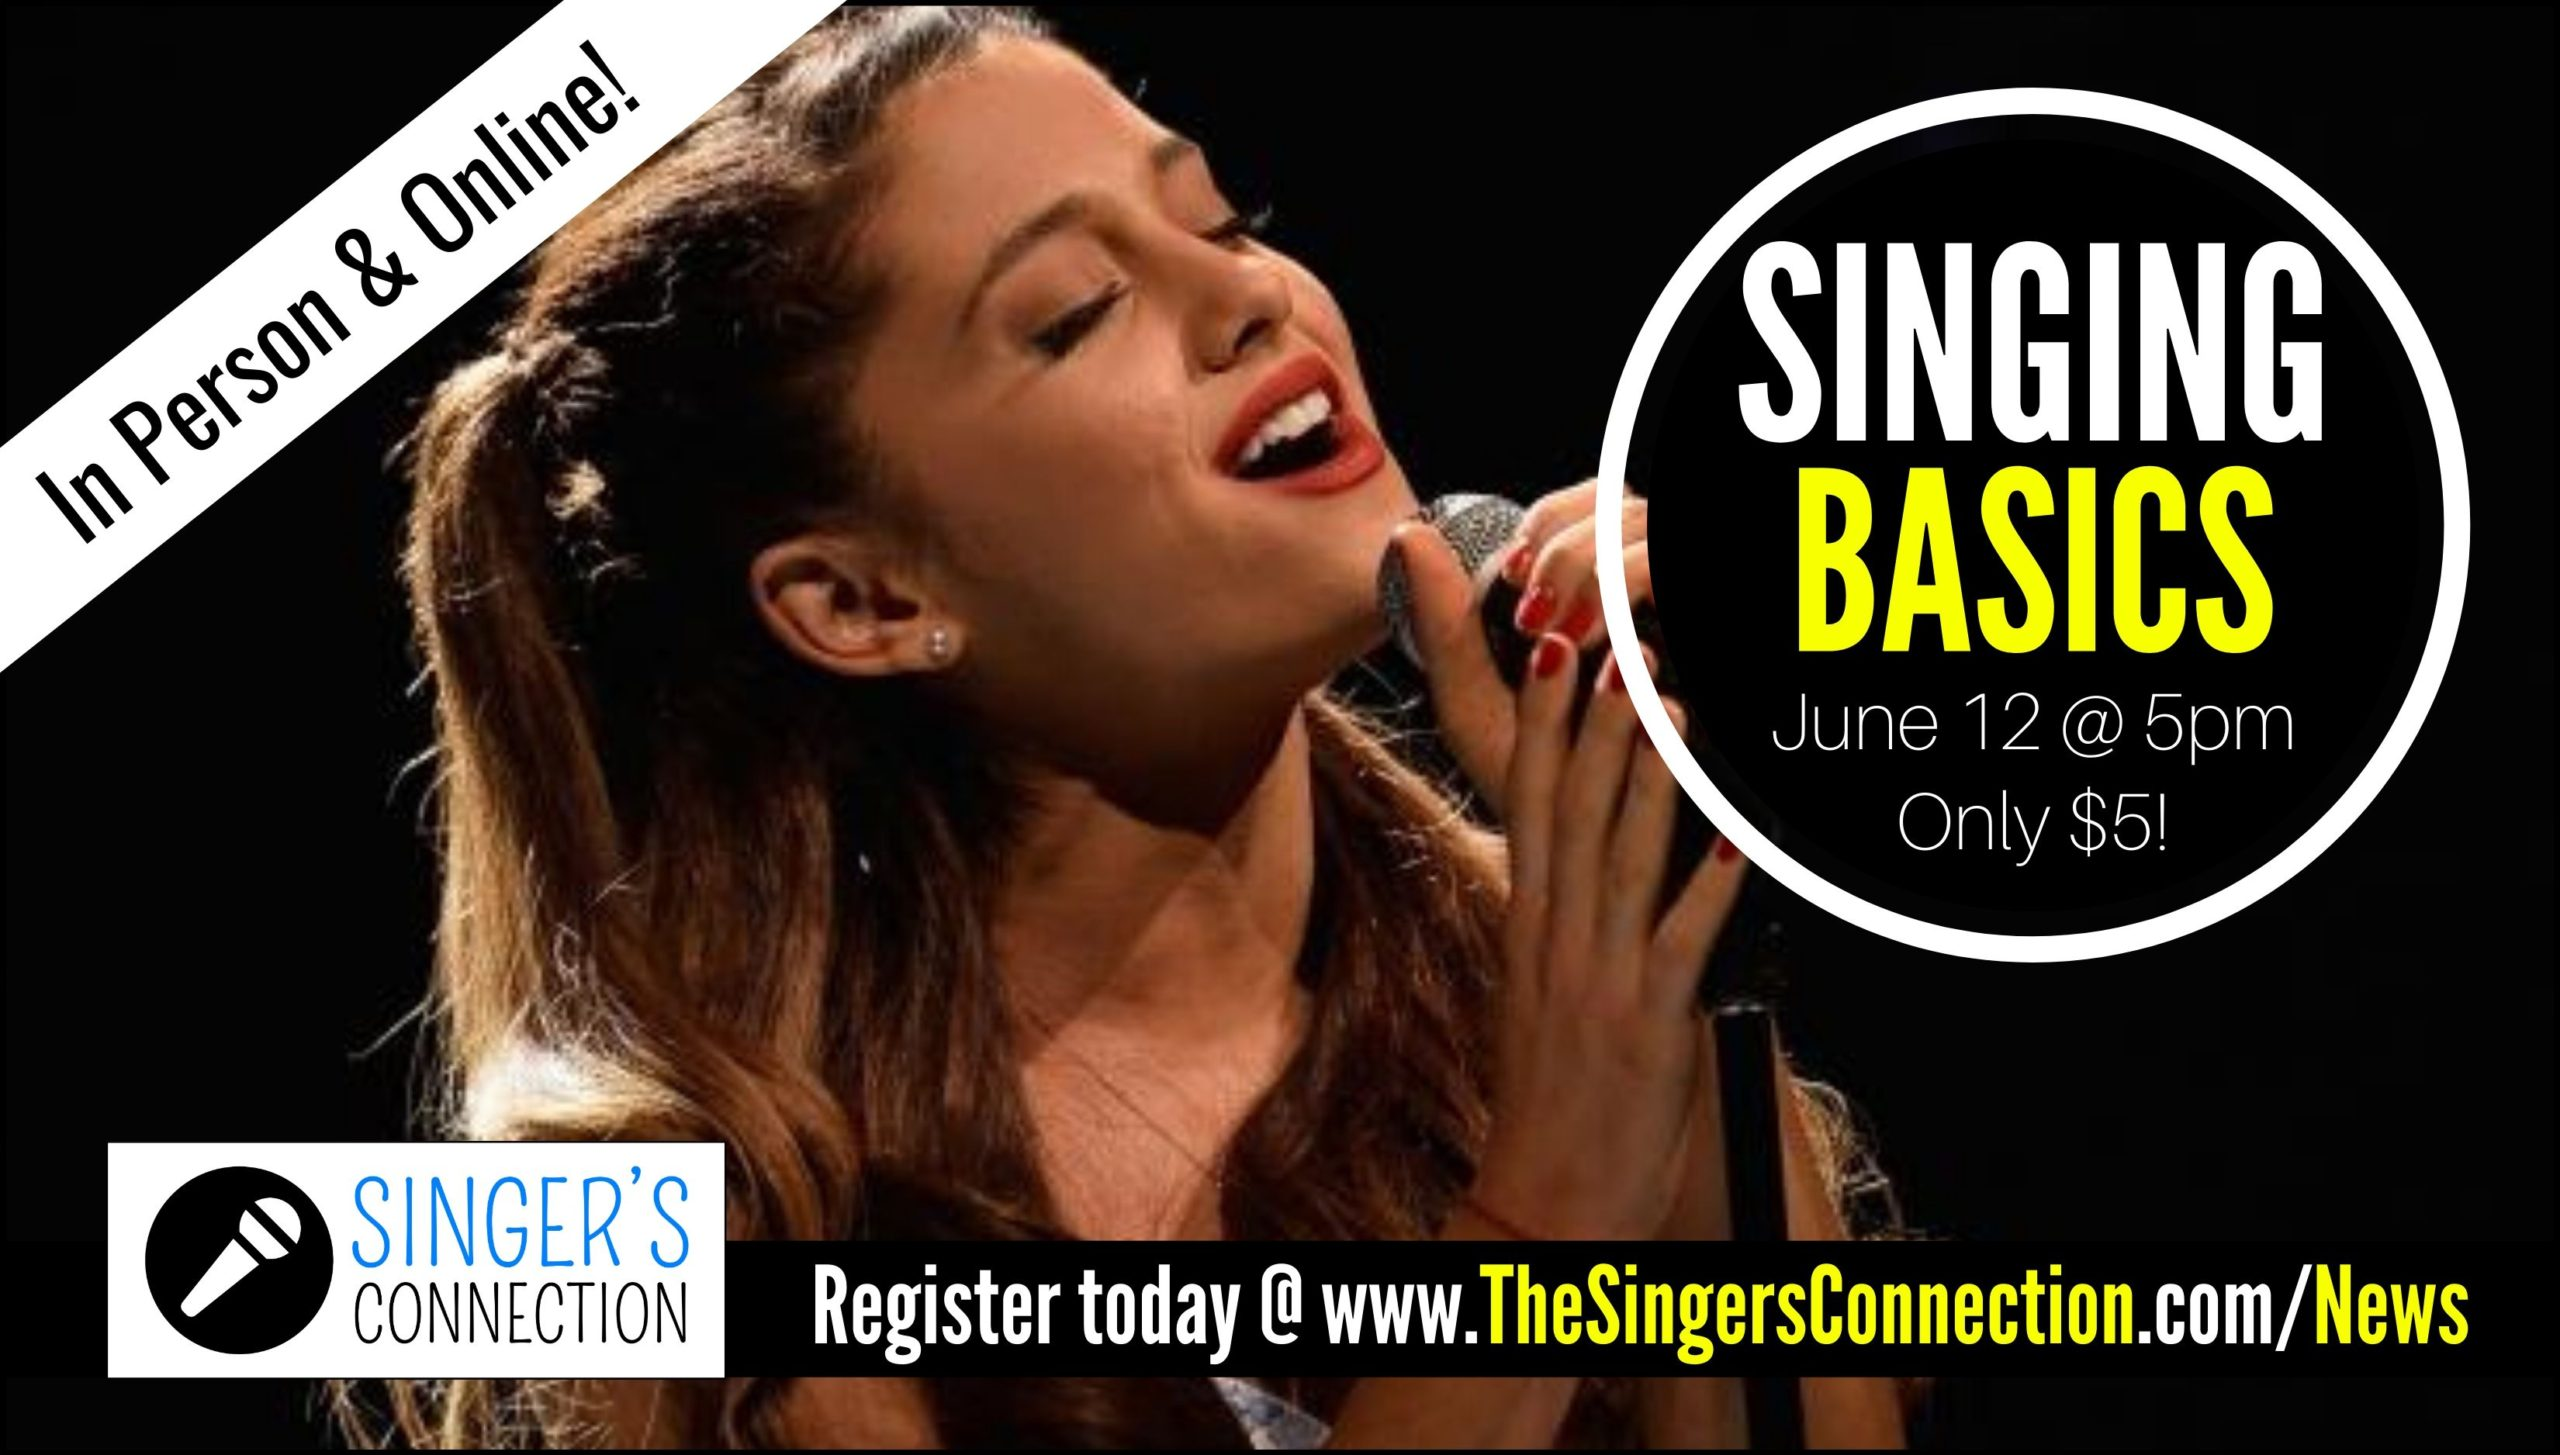 Learn some simple techniques to take your singing to the next level!